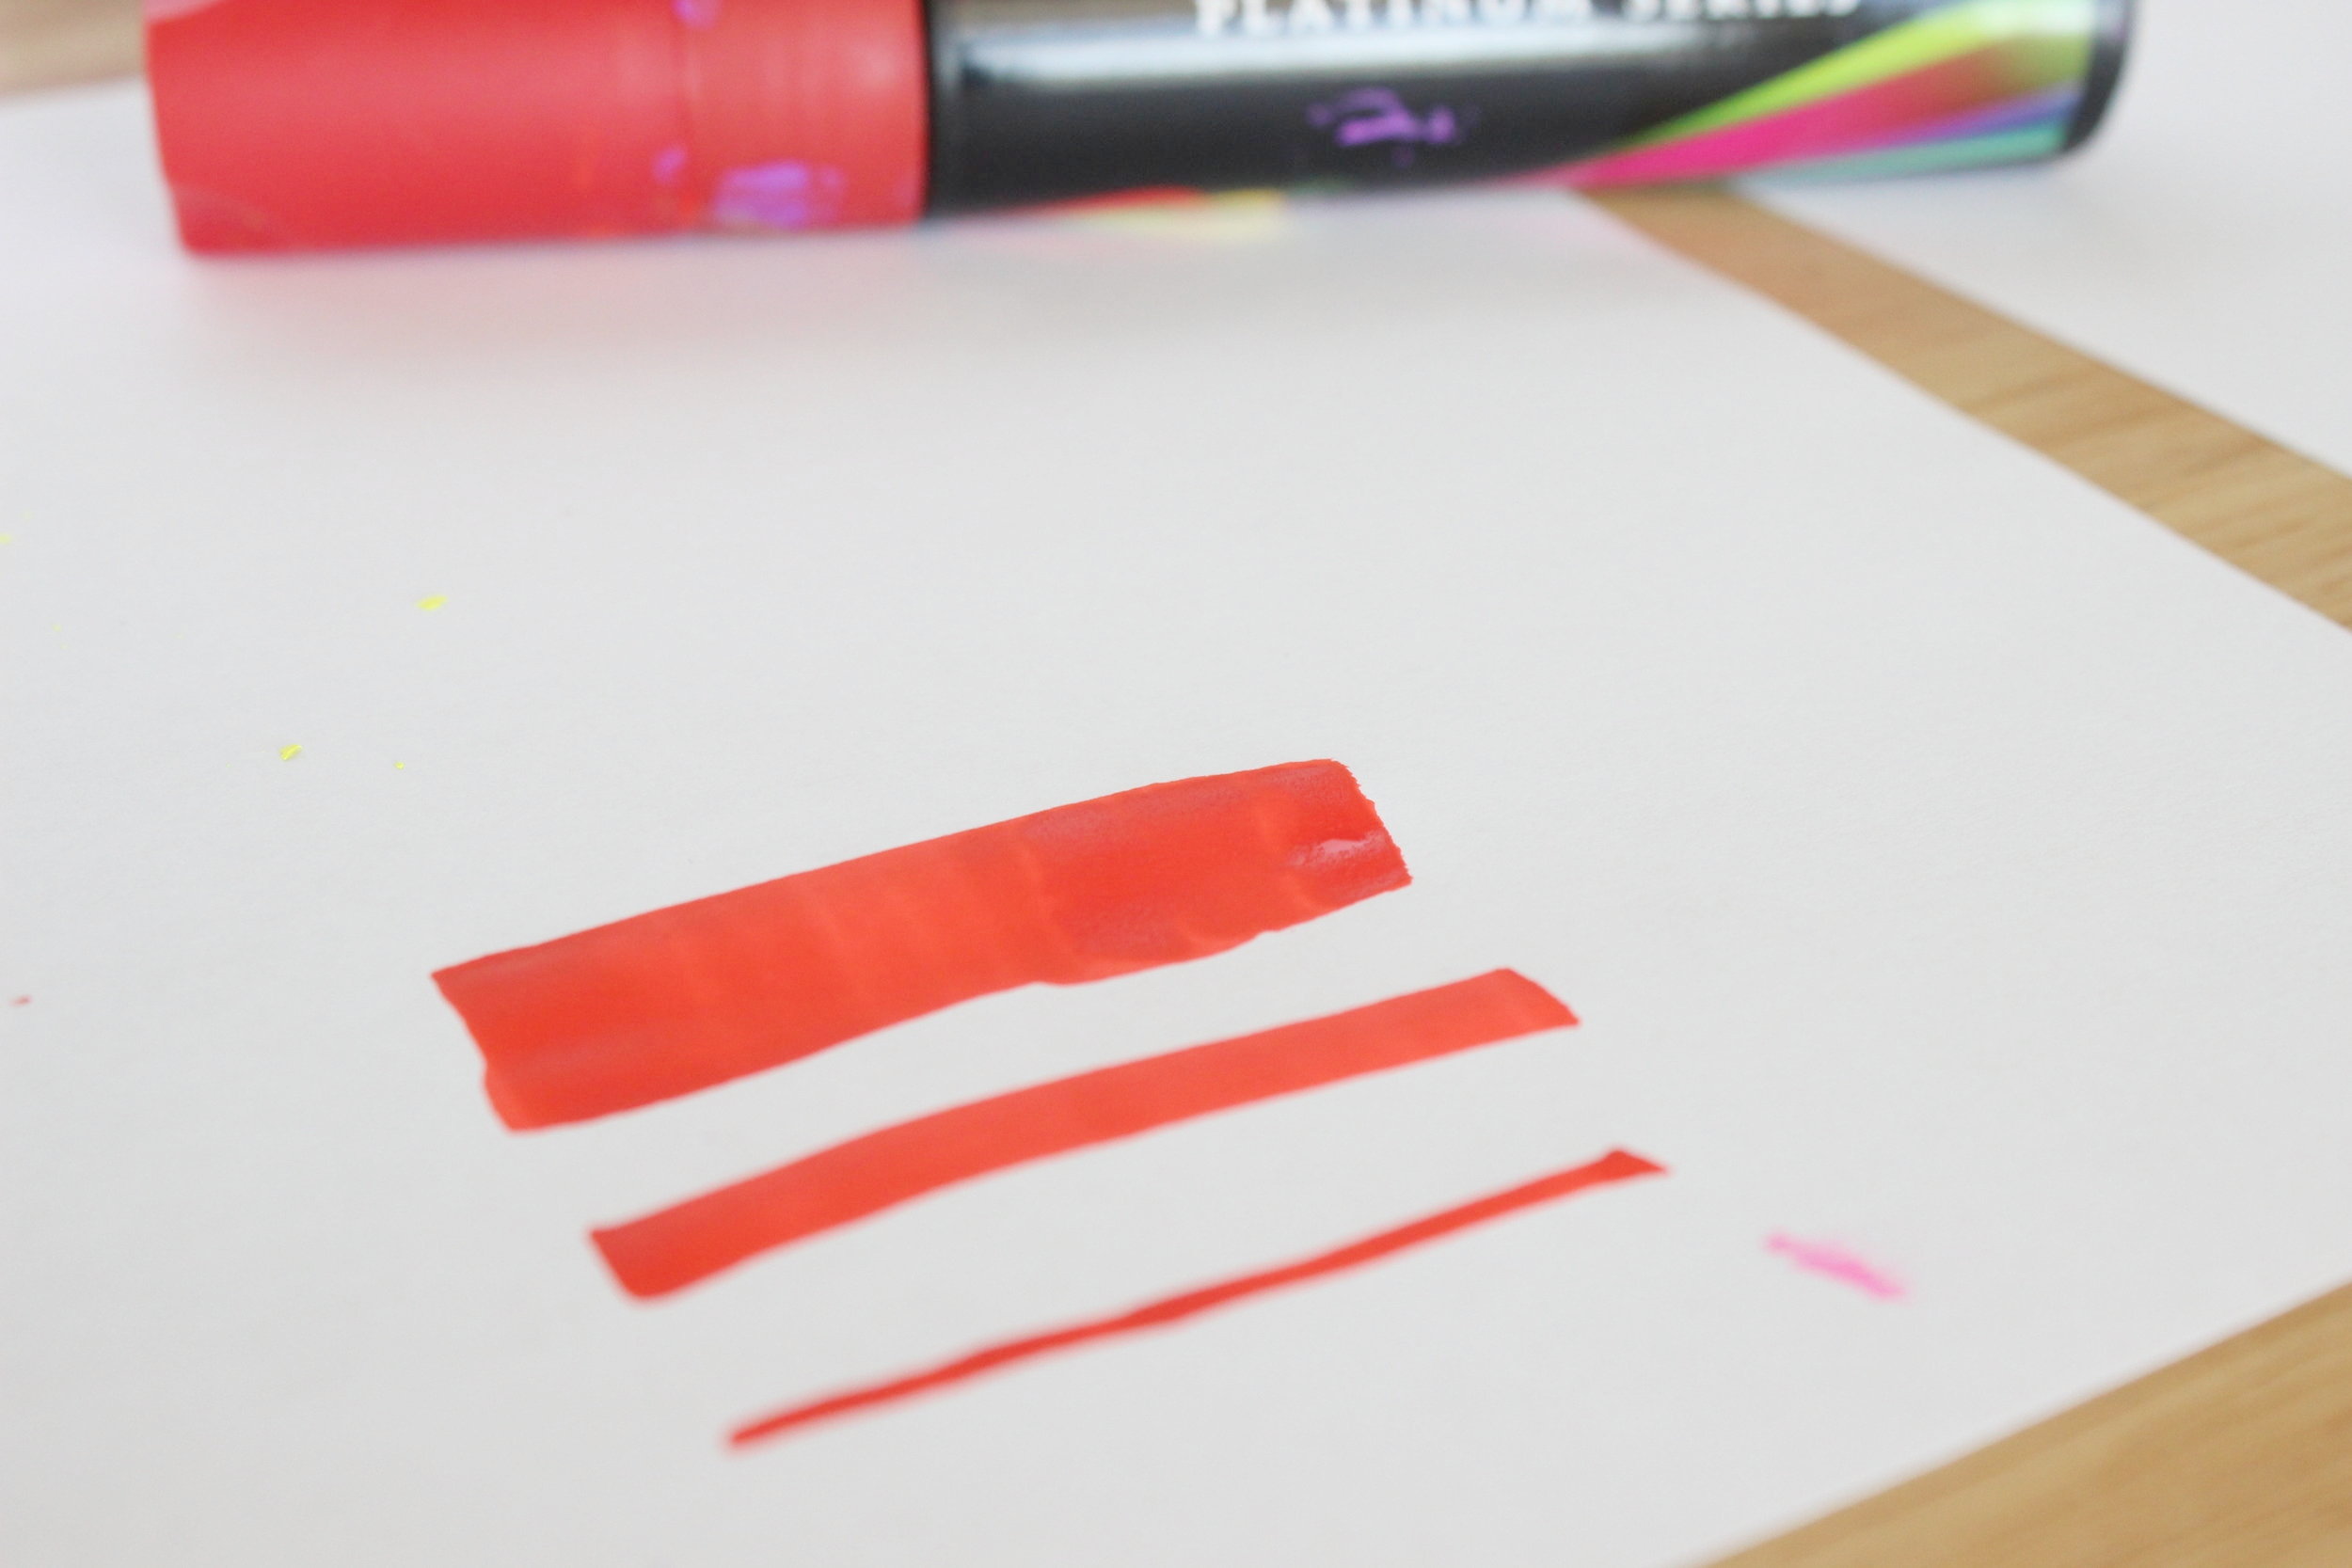 The 3 types of lines that the Chalkola Platinum Series Markers with the 3-in-1 tip can make.